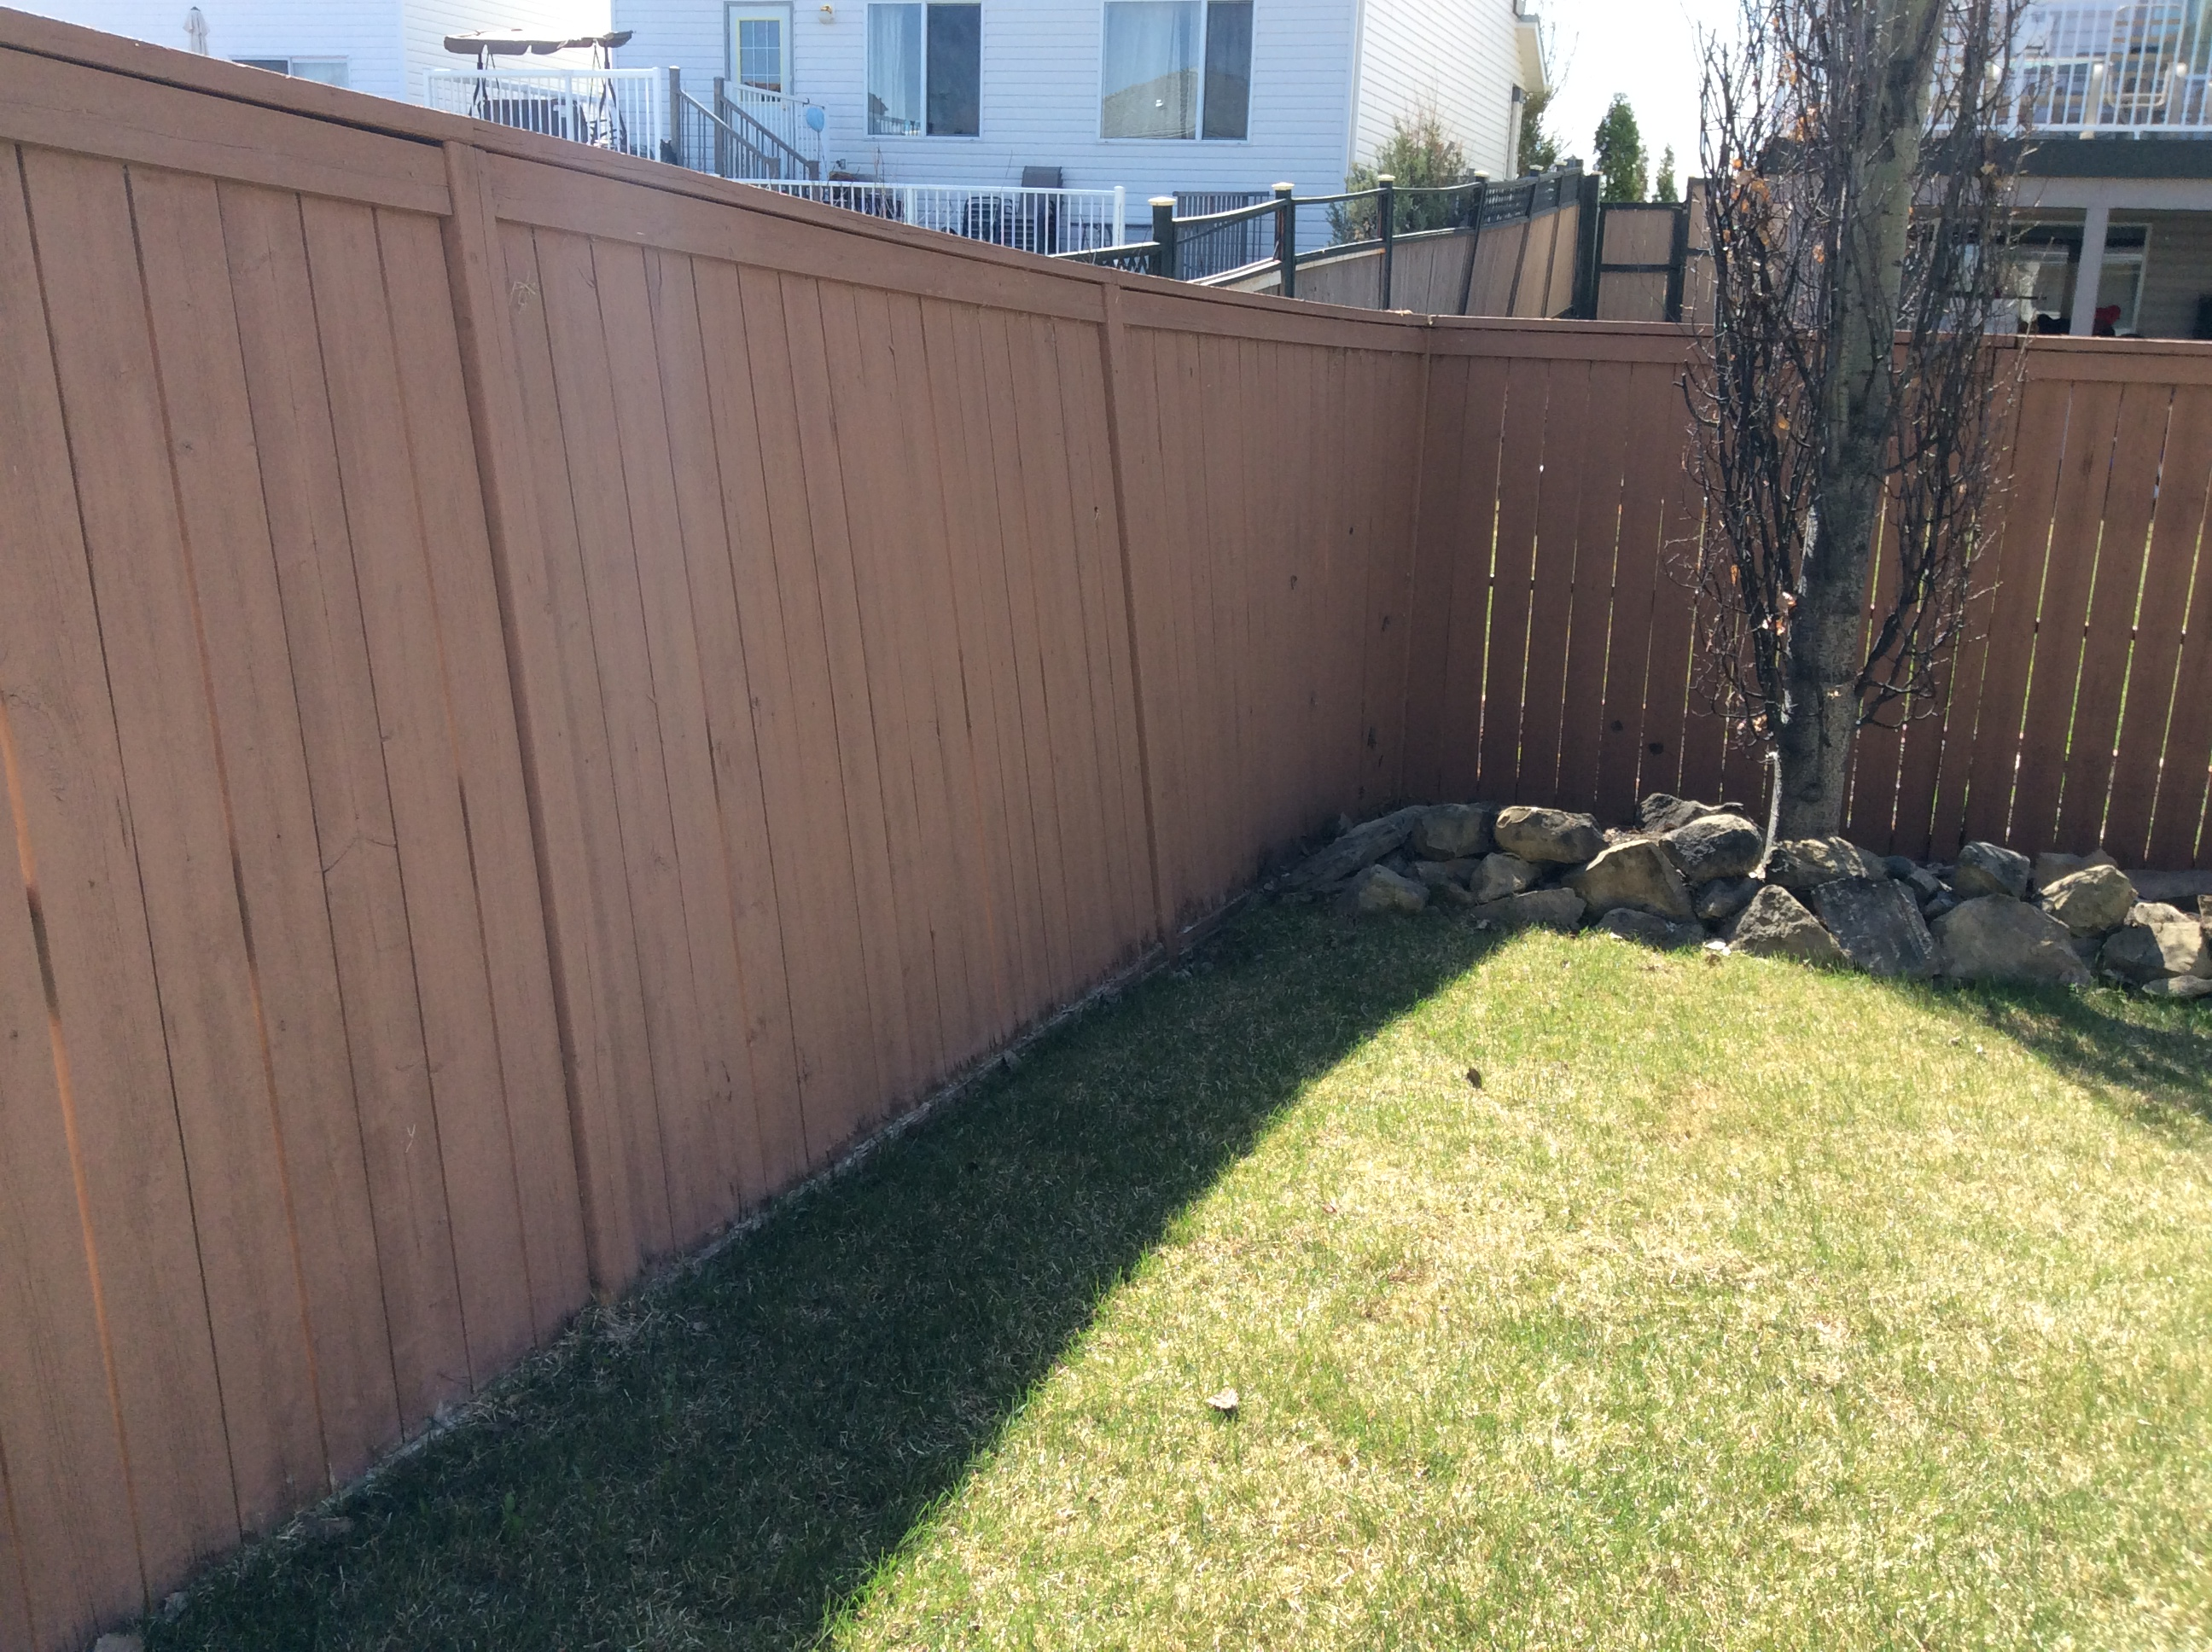 6 Foot Wood Fence